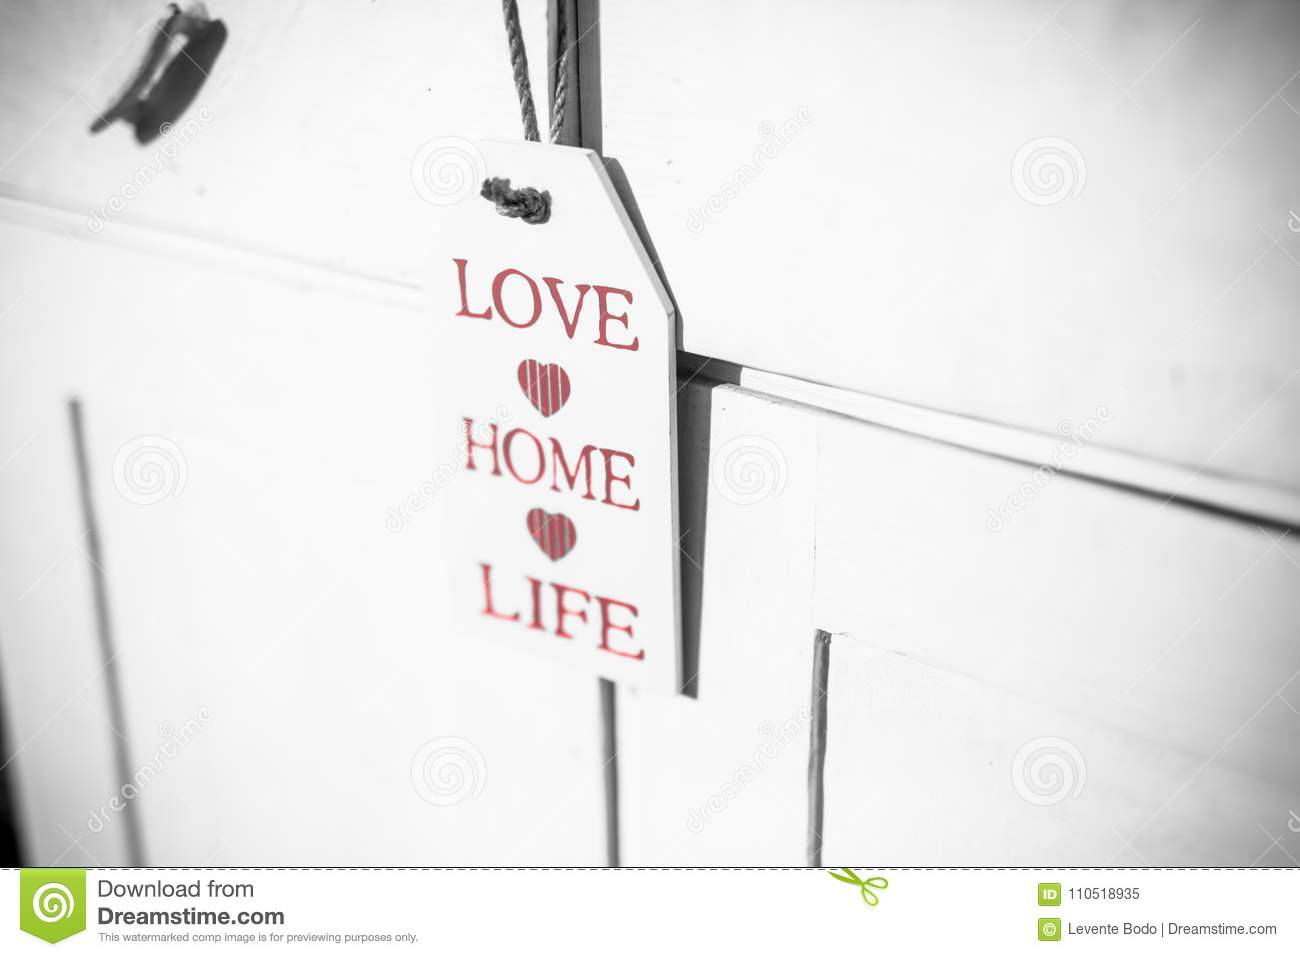 Love, home, life sign on wooden ornament and positive thinking wooden plaque